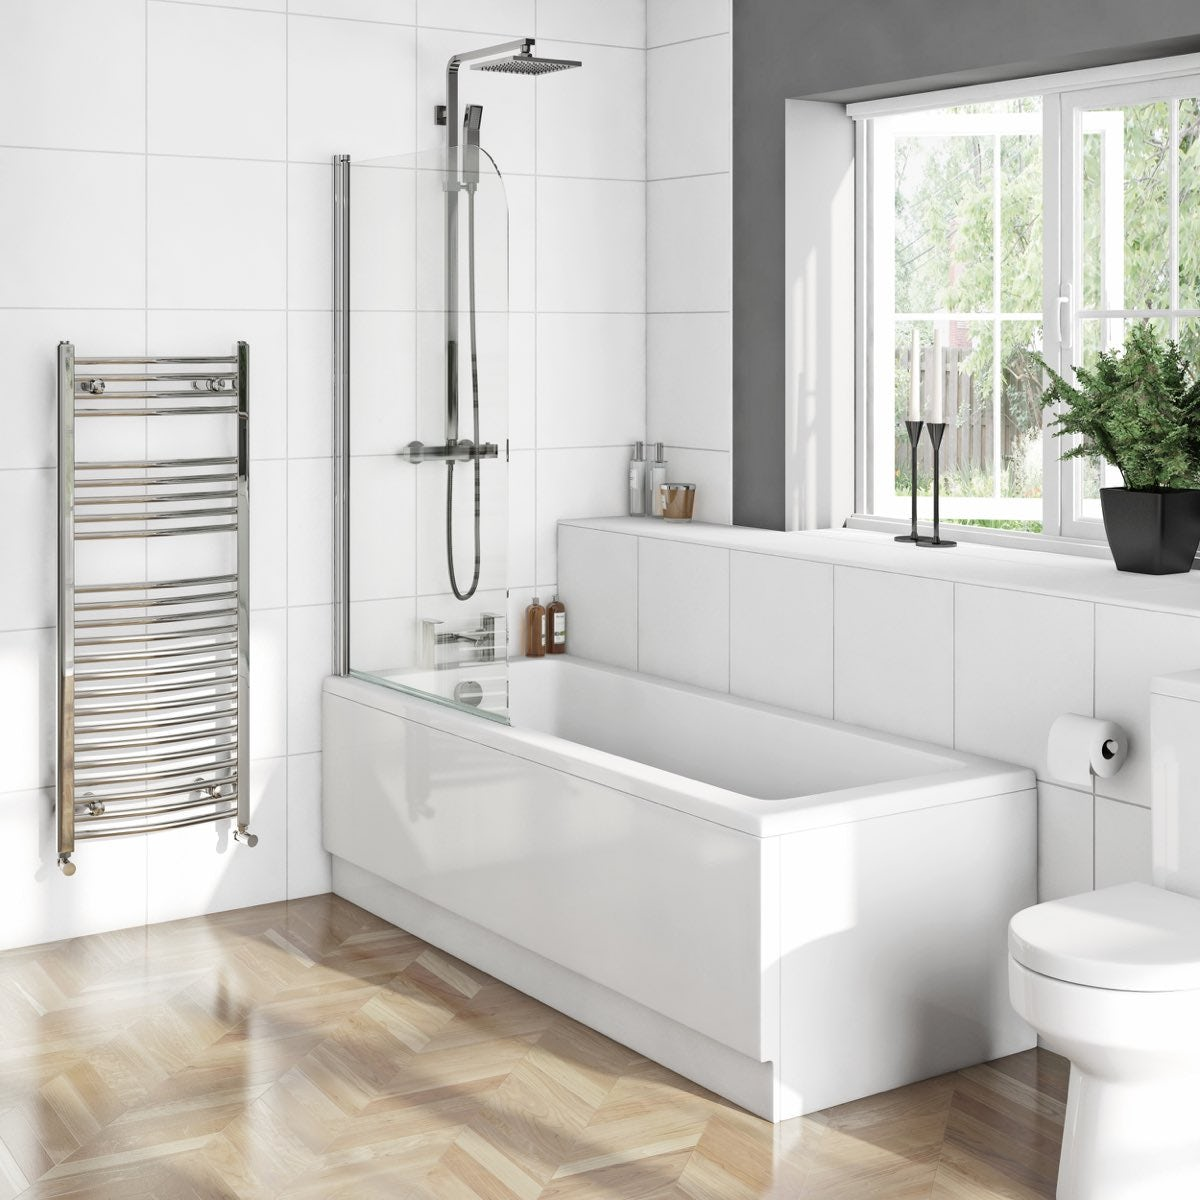 100+ [ Curved Bath Shower Screen ] | Articles With Curved Bath ...